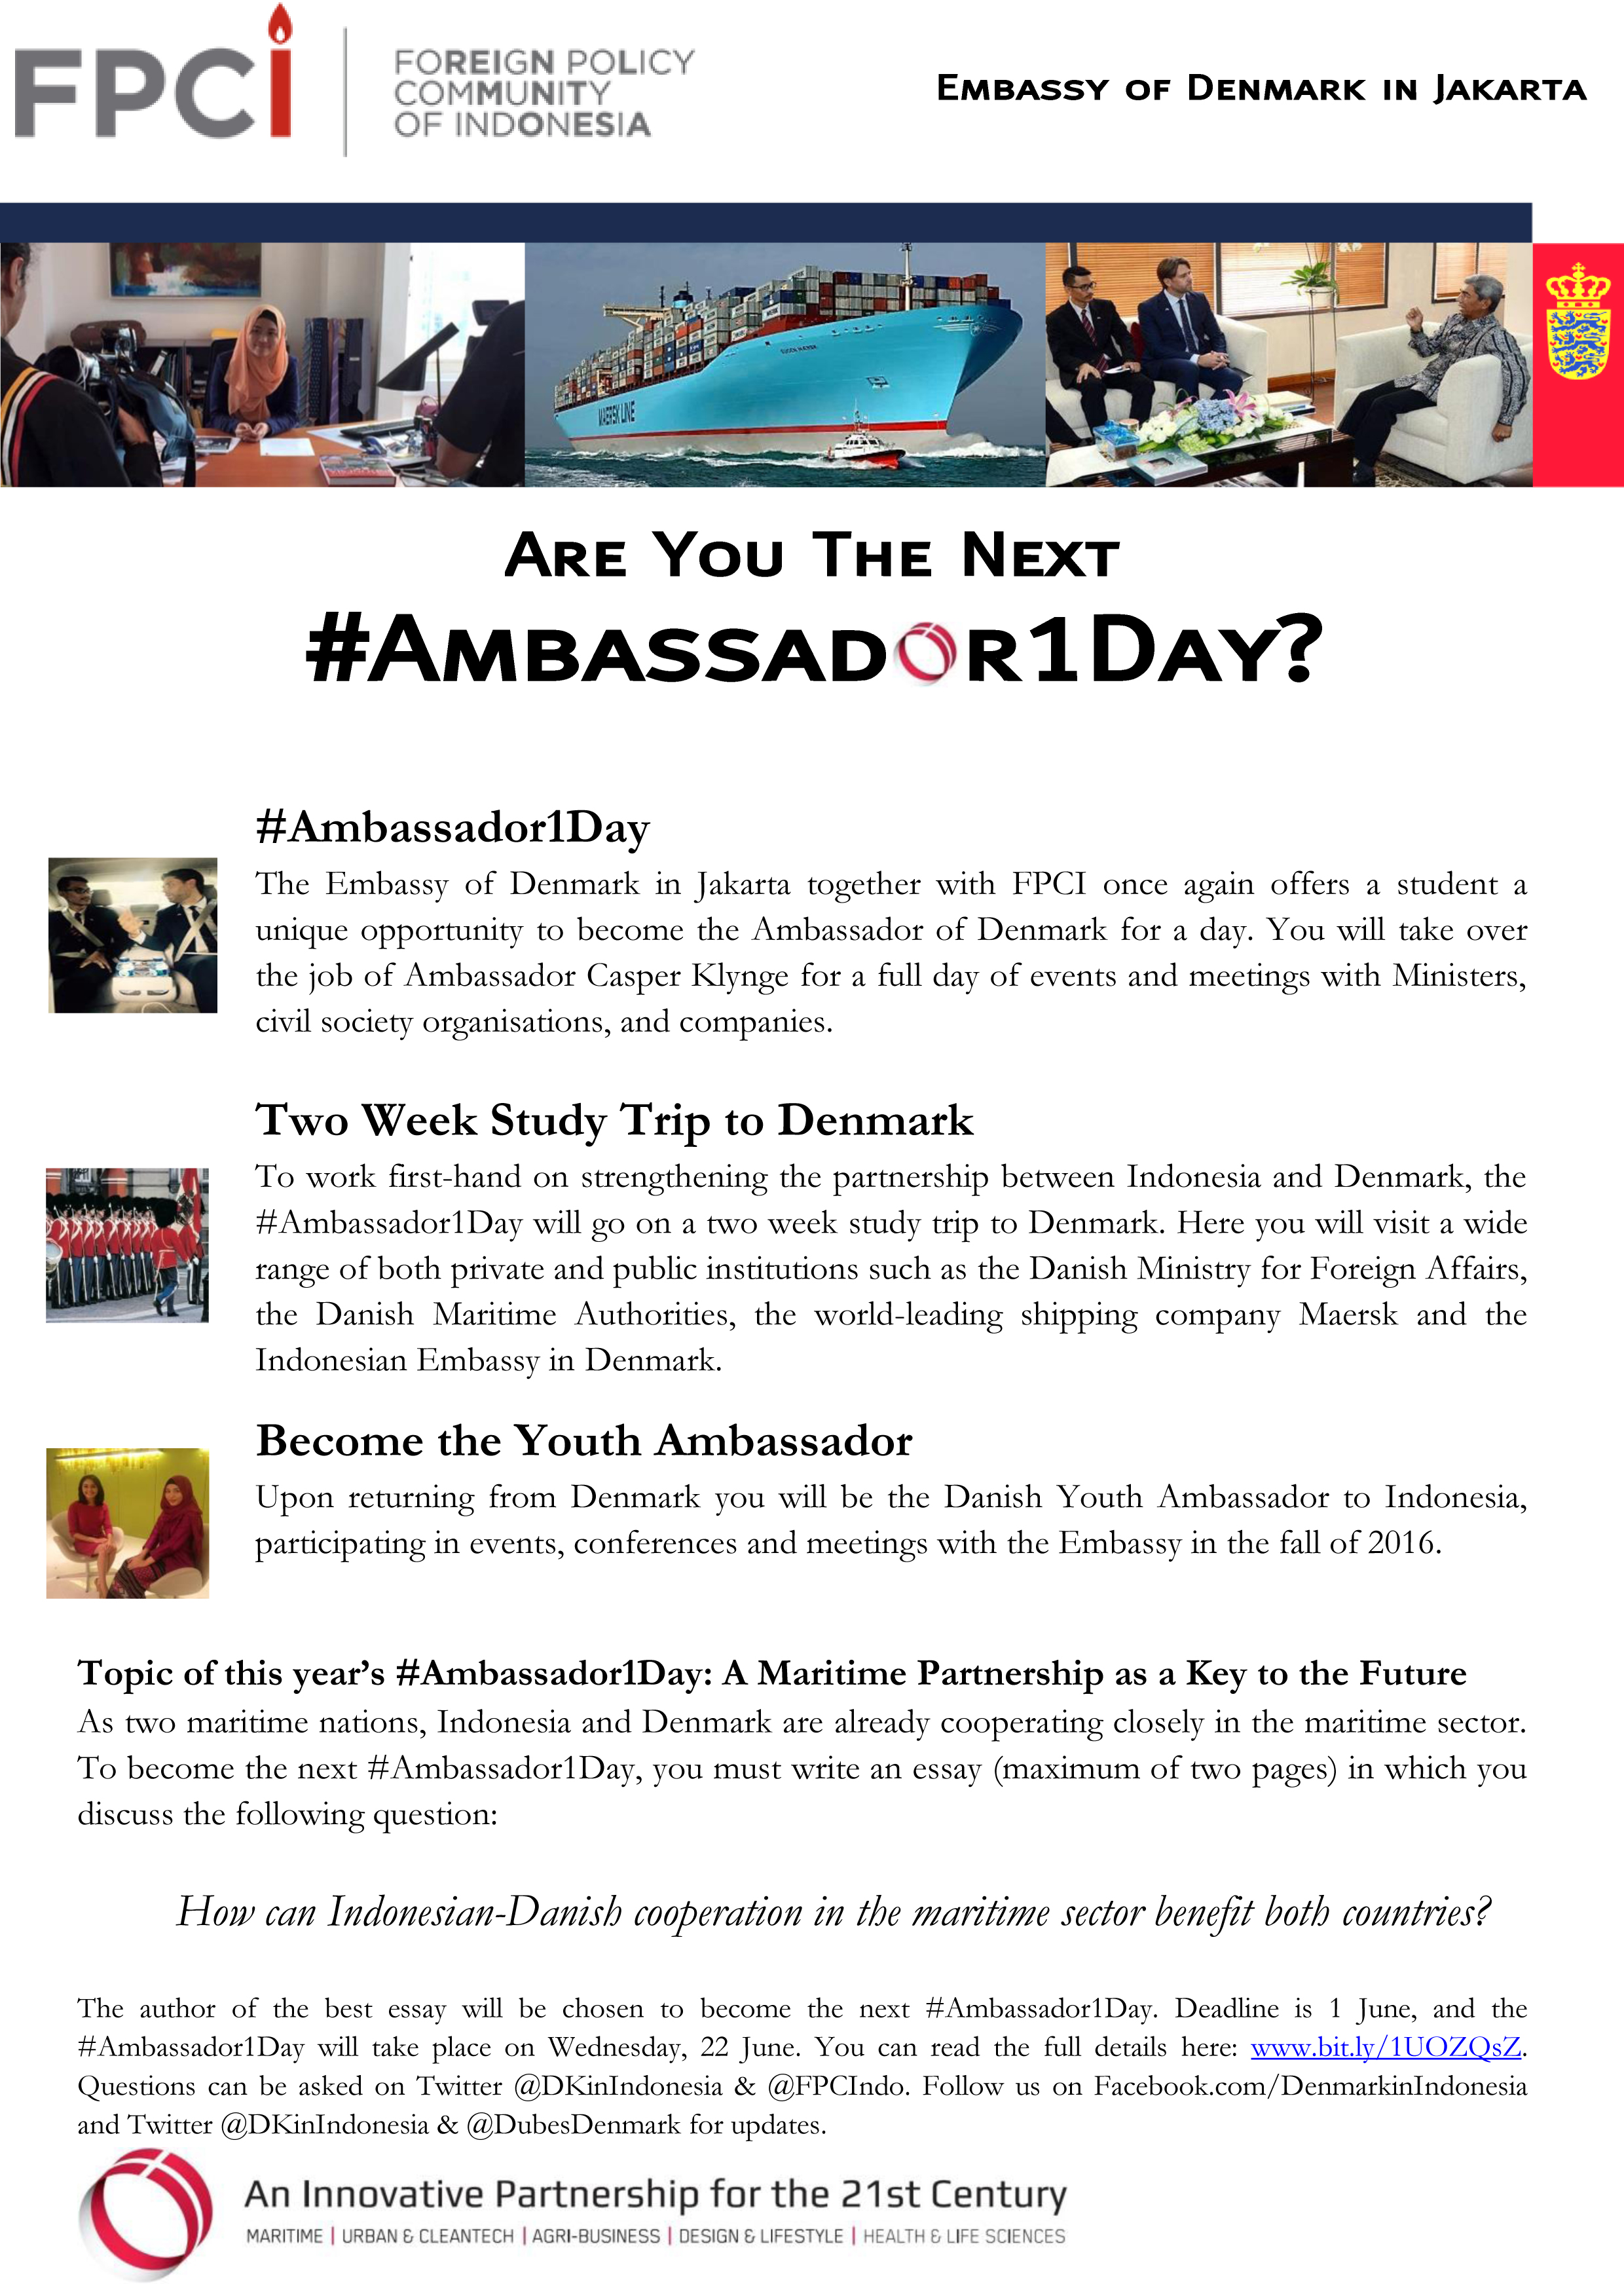 Ambassador1Day Essay Competition